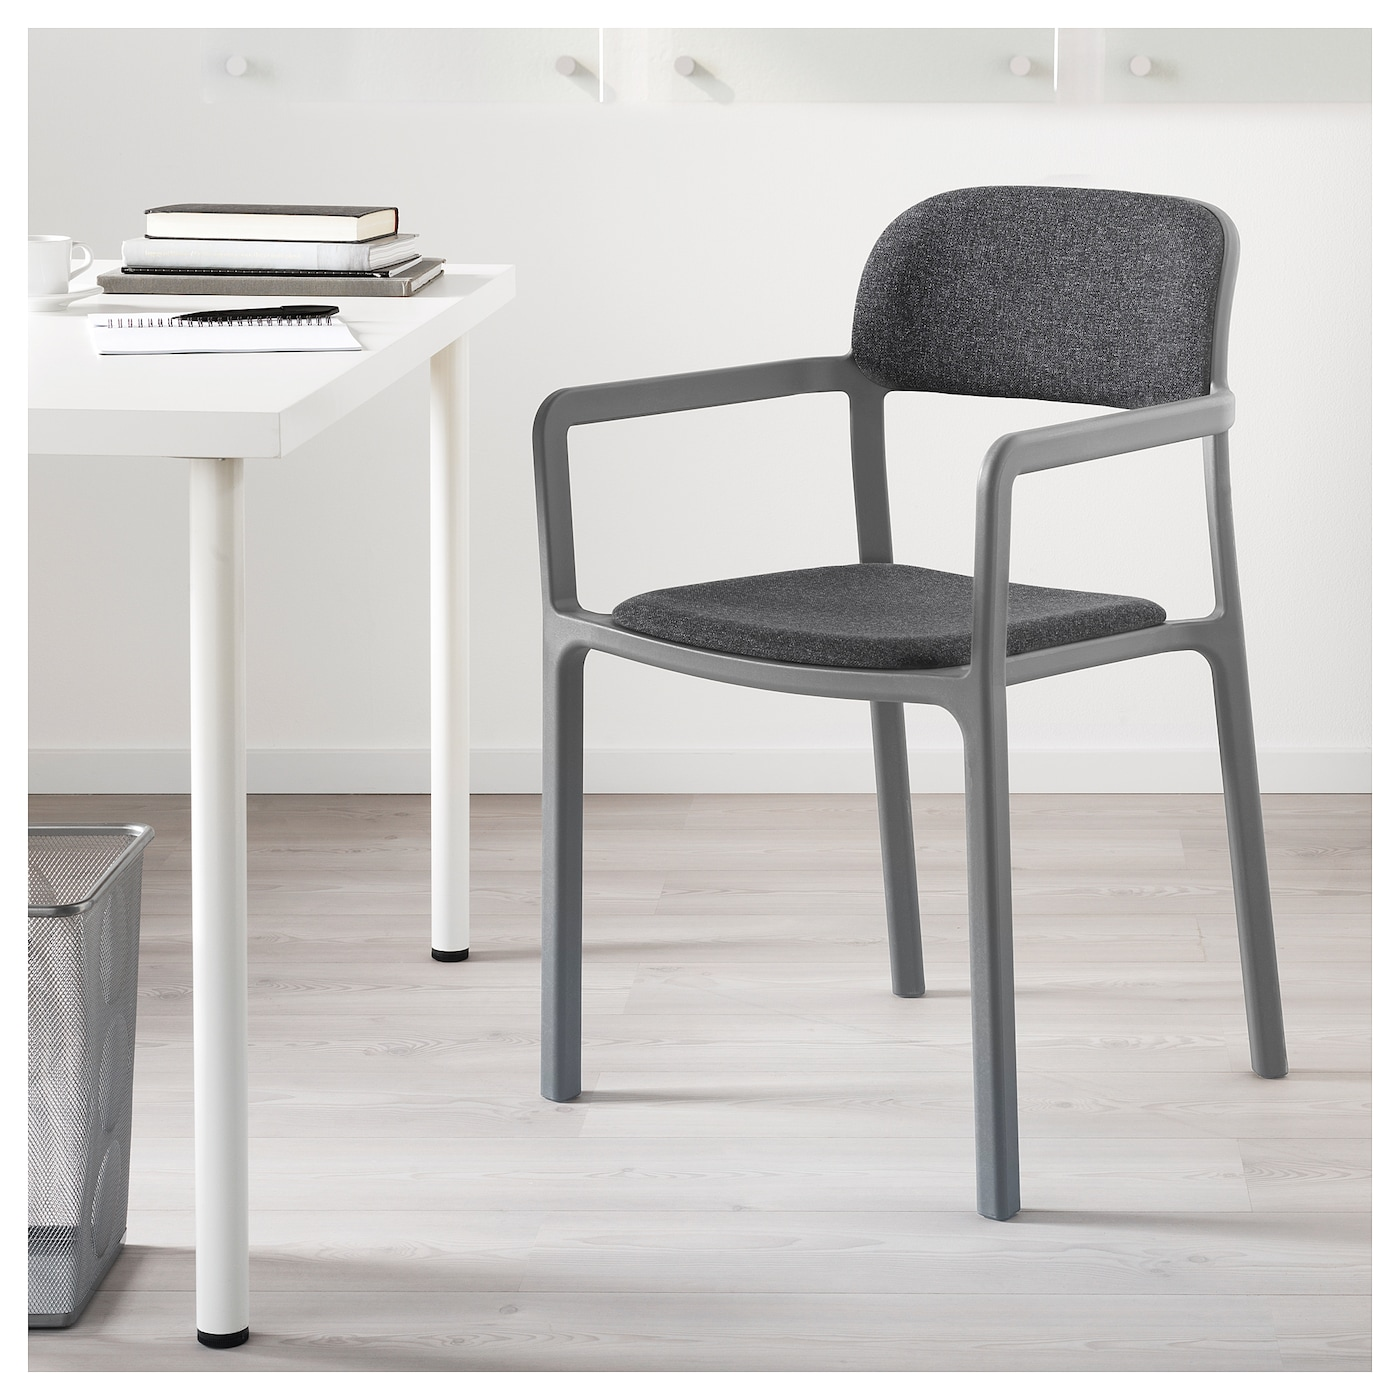 ypperlig chair with armrests gunnared dark grey ikea. Black Bedroom Furniture Sets. Home Design Ideas